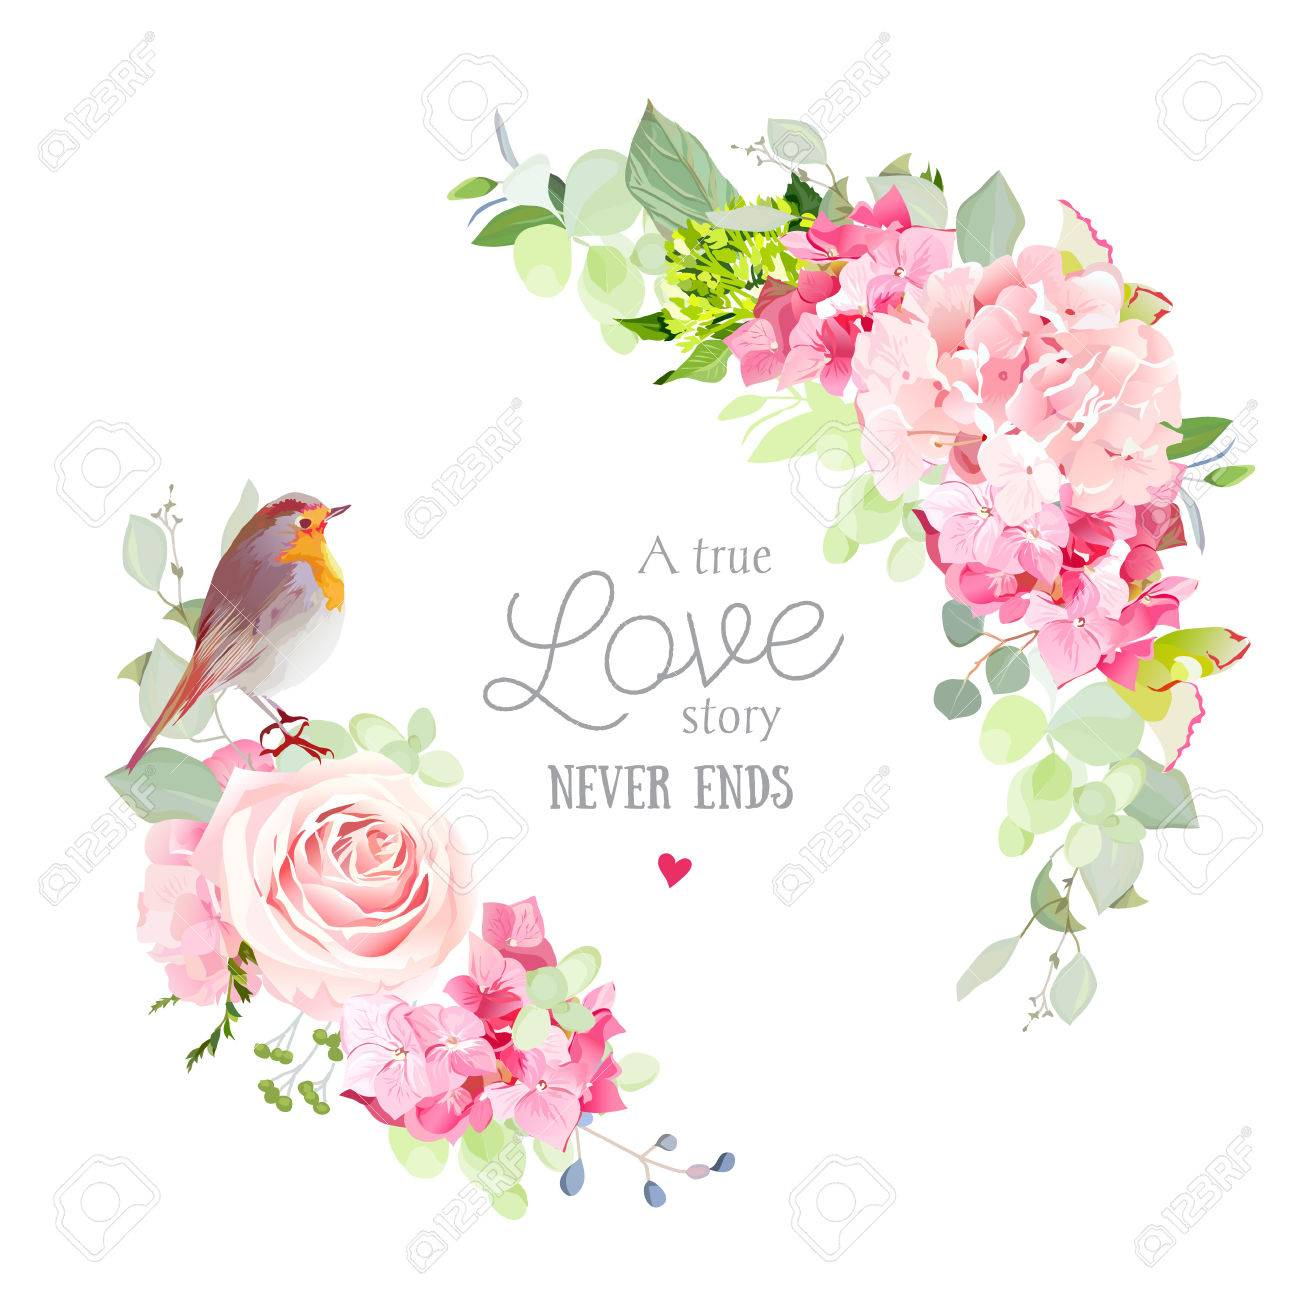 Floral vector round frame with pink rose, hydrangea, carnation flowers, mixed plants and cute small robin bird. Half moon shape bouquets. All elements are isolated and editable - 71320436